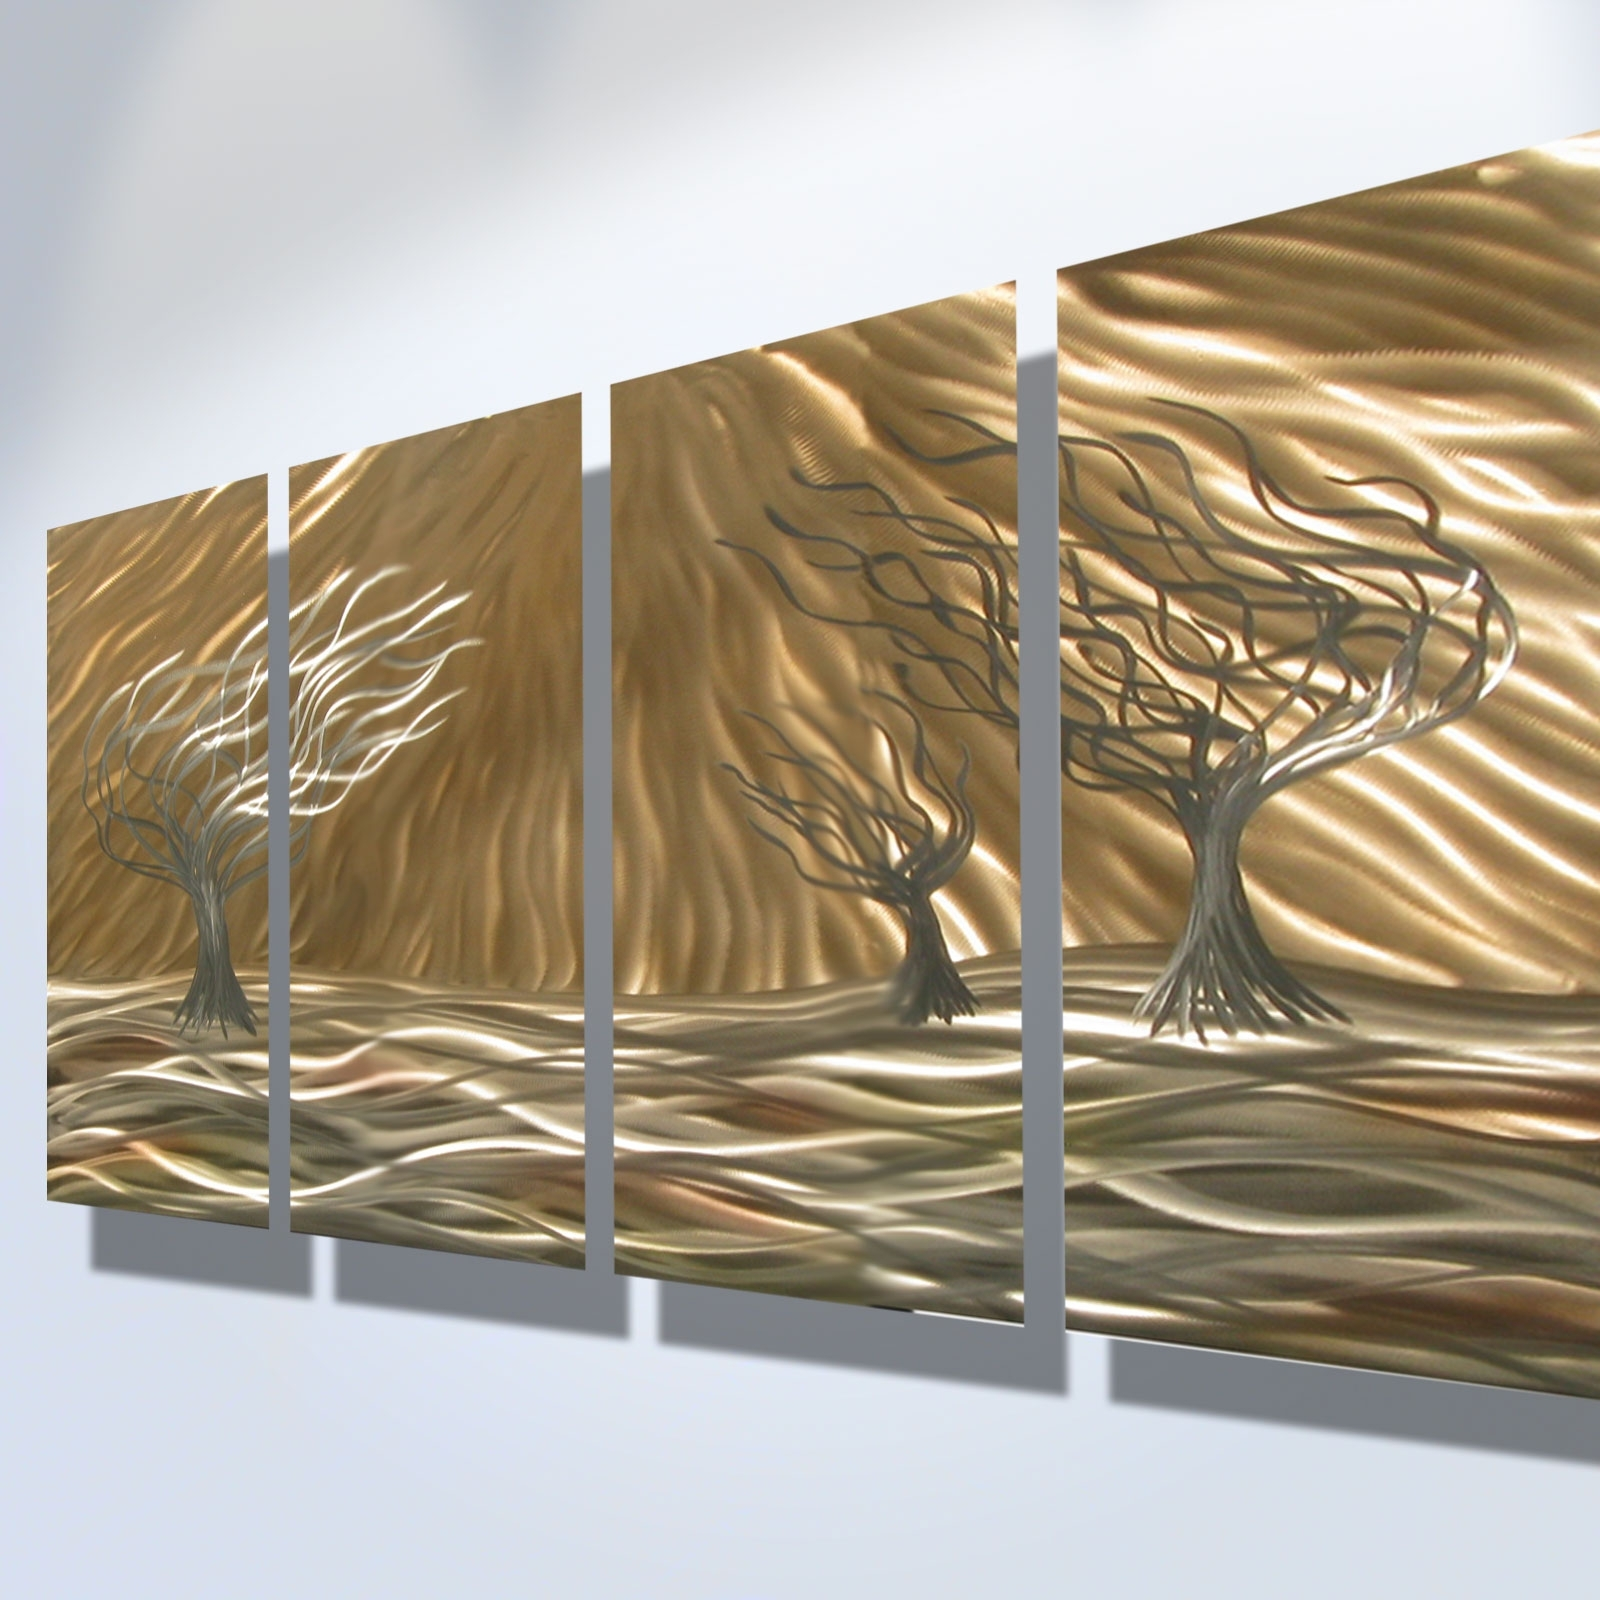 3 Trees 4 Panel – Abstract Metal Wall Art Contemporary Modern With Recent Abstract Metal Wall Art Panels (Gallery 2 of 20)